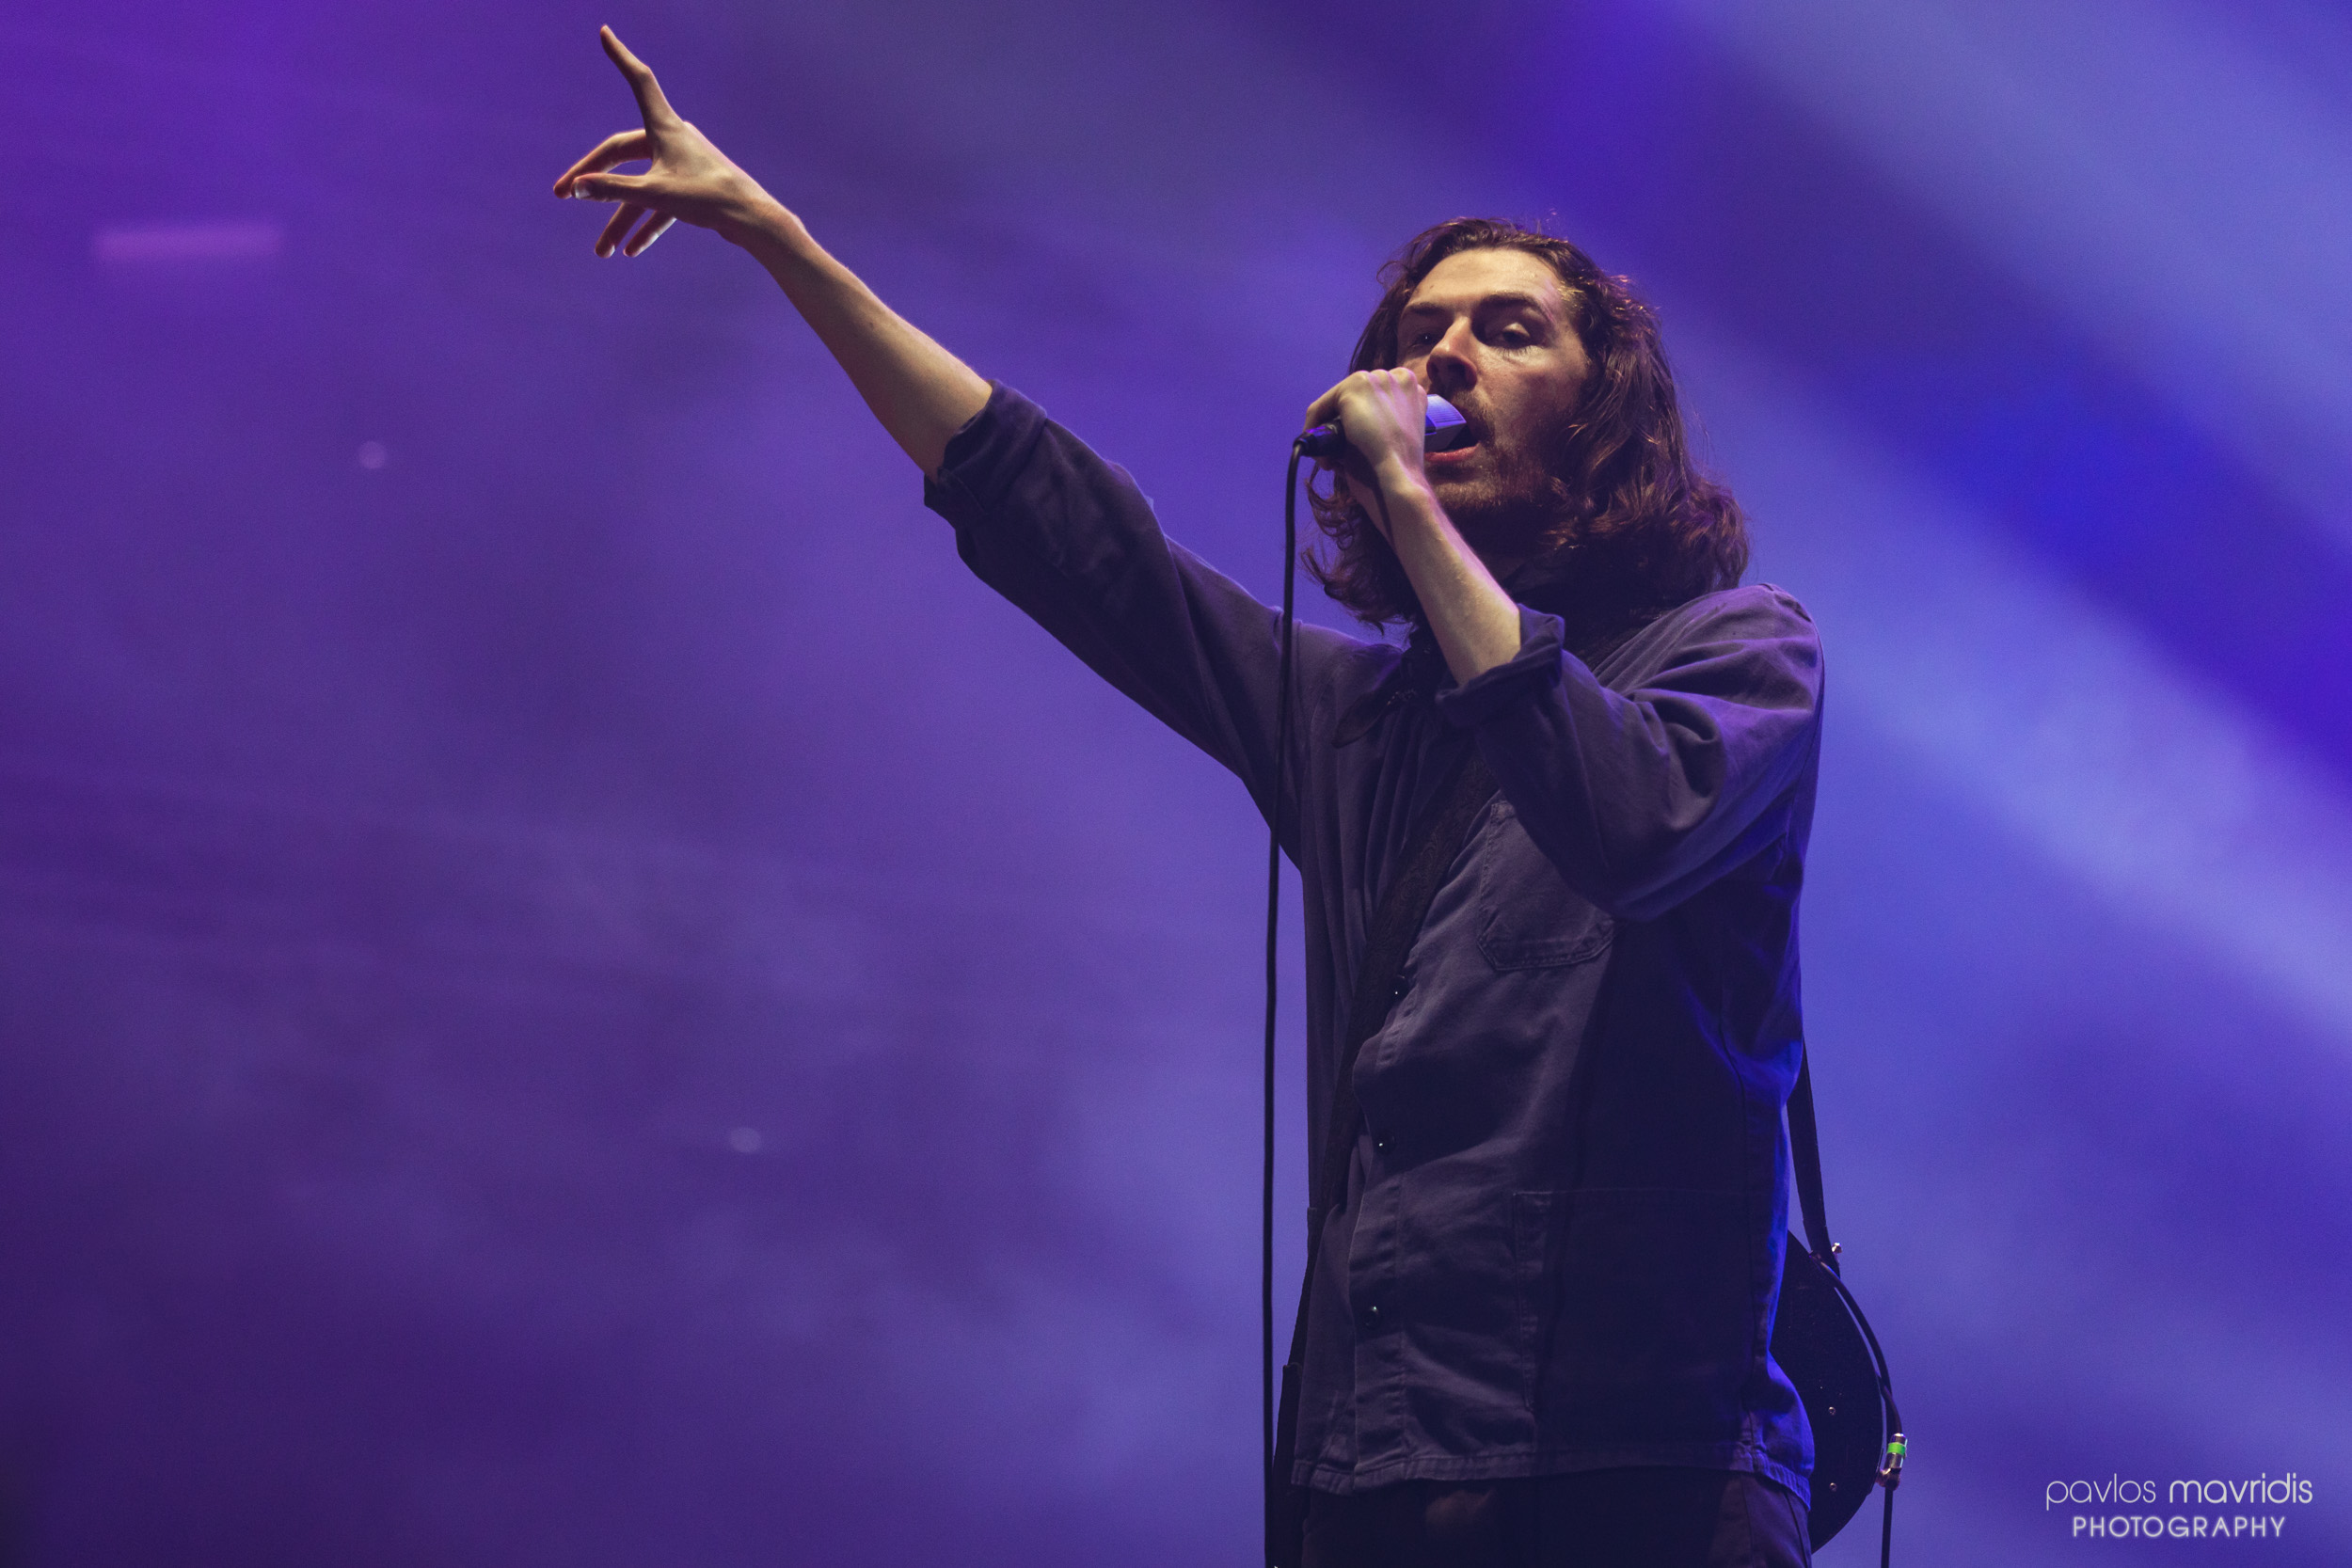 Hozier_Release Athens 2019_08_hires_web.jpg